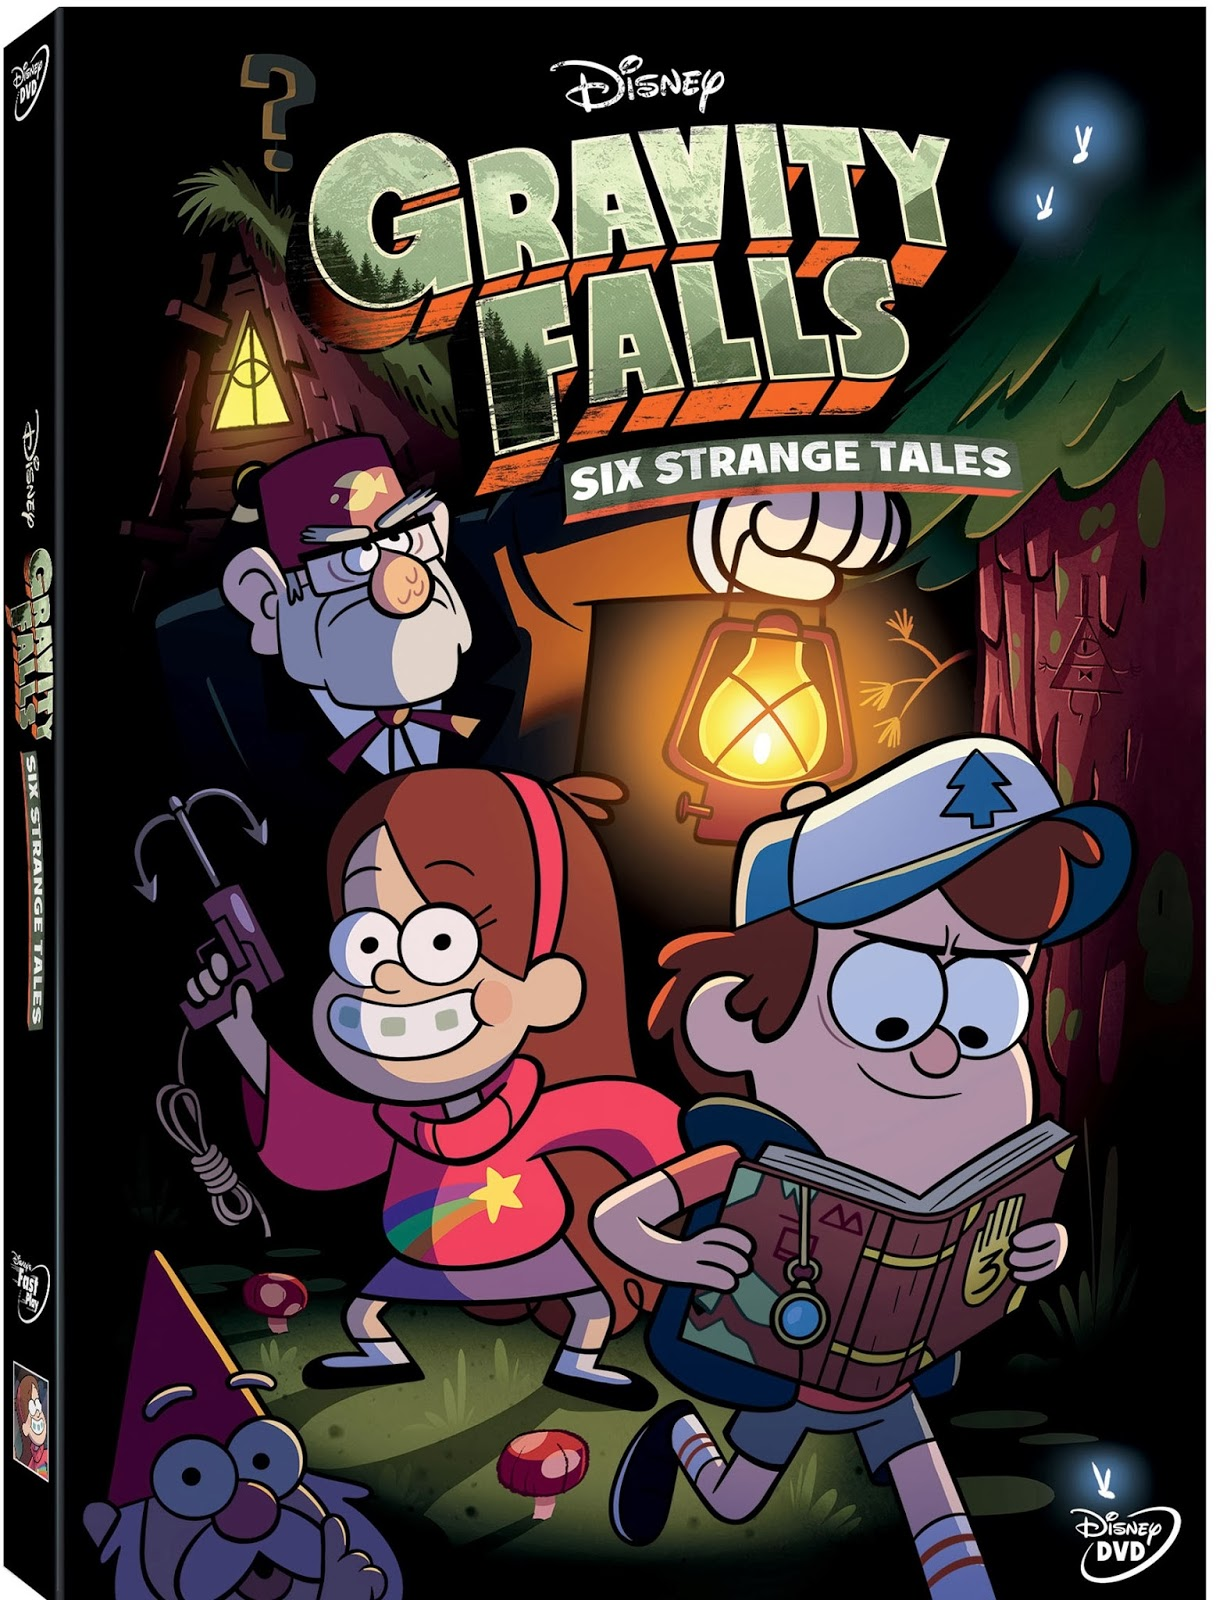 Gravity Falls Six Strange Tales Mommy Katie Squishy Circuits Teach Electrical Innovation Opus Magnum